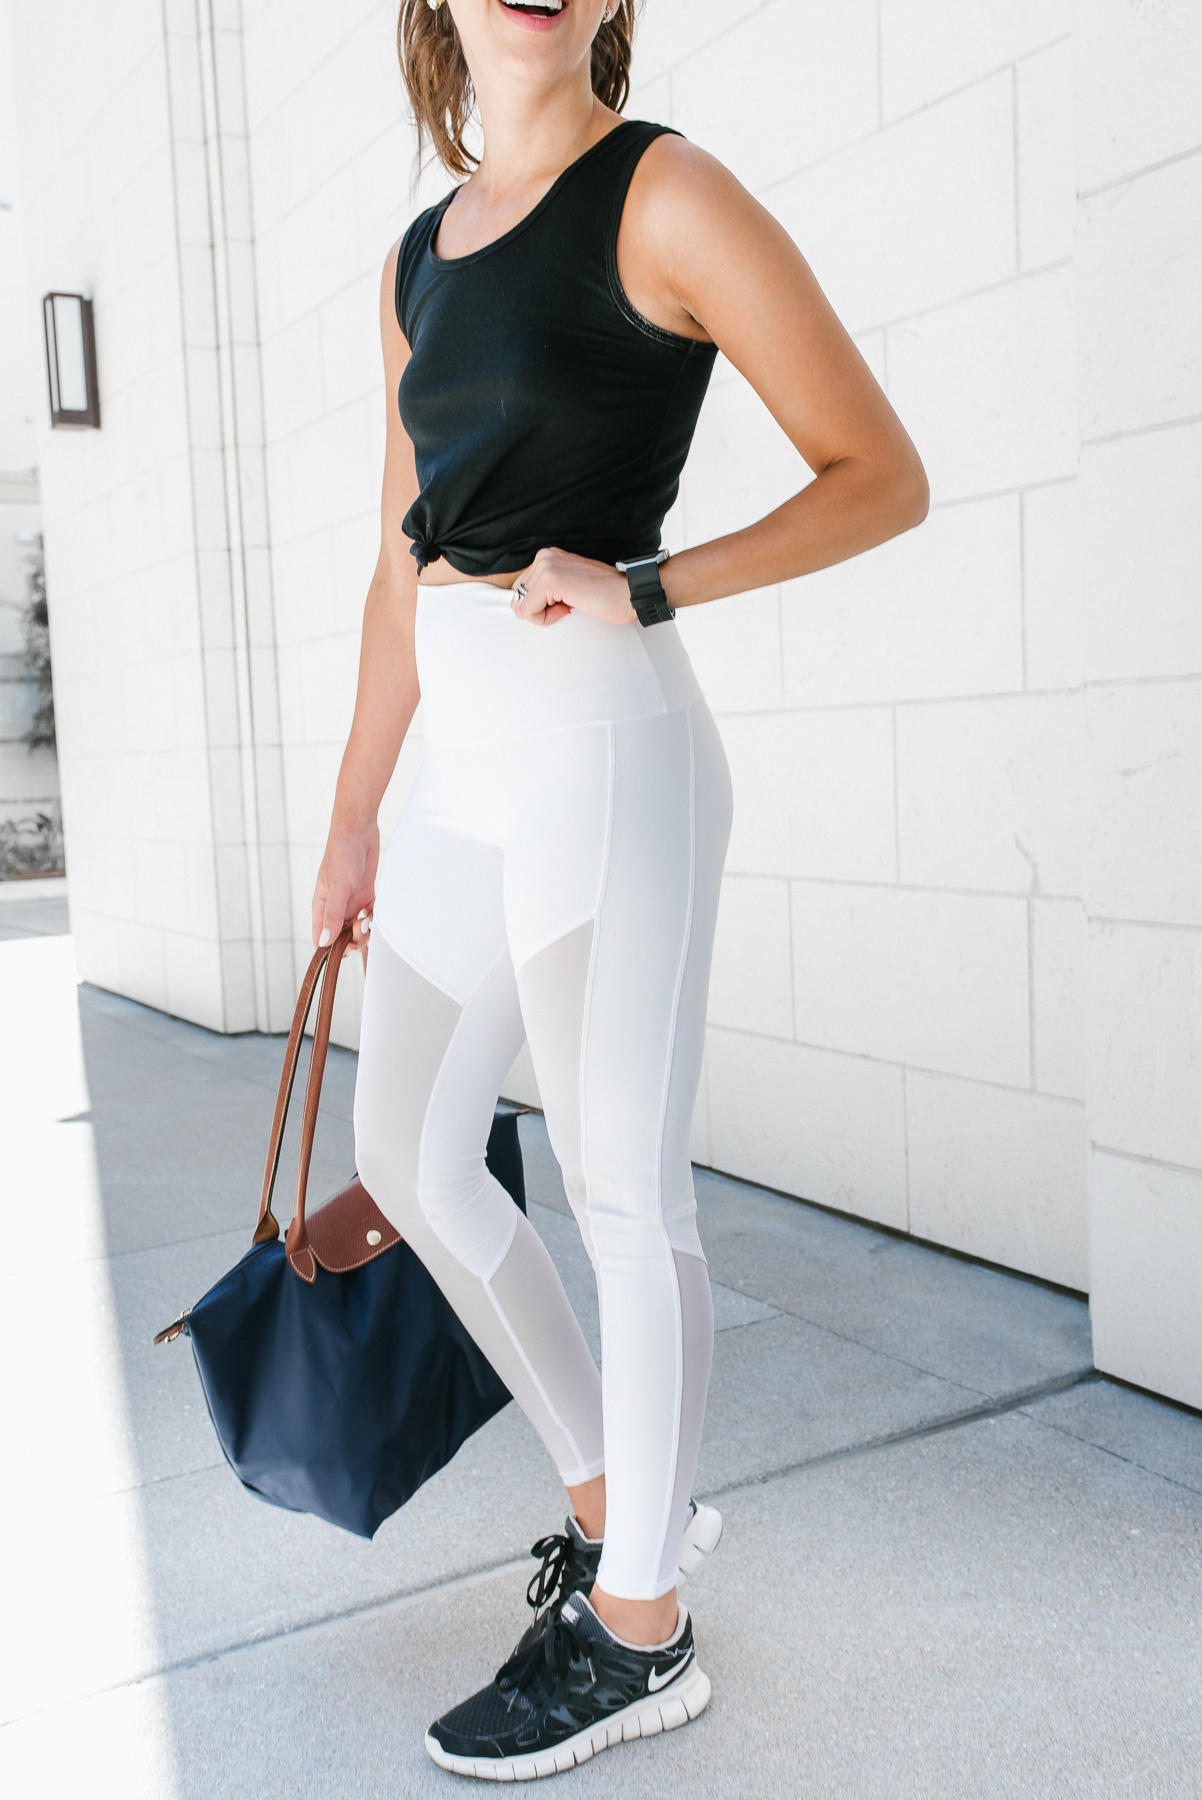 Dress Up Buttercup, Dede Raad,Fashion Blogger, Houston Blogger, Workout clothes, Equinox, White Leggings, Gym attire, working on my fitness